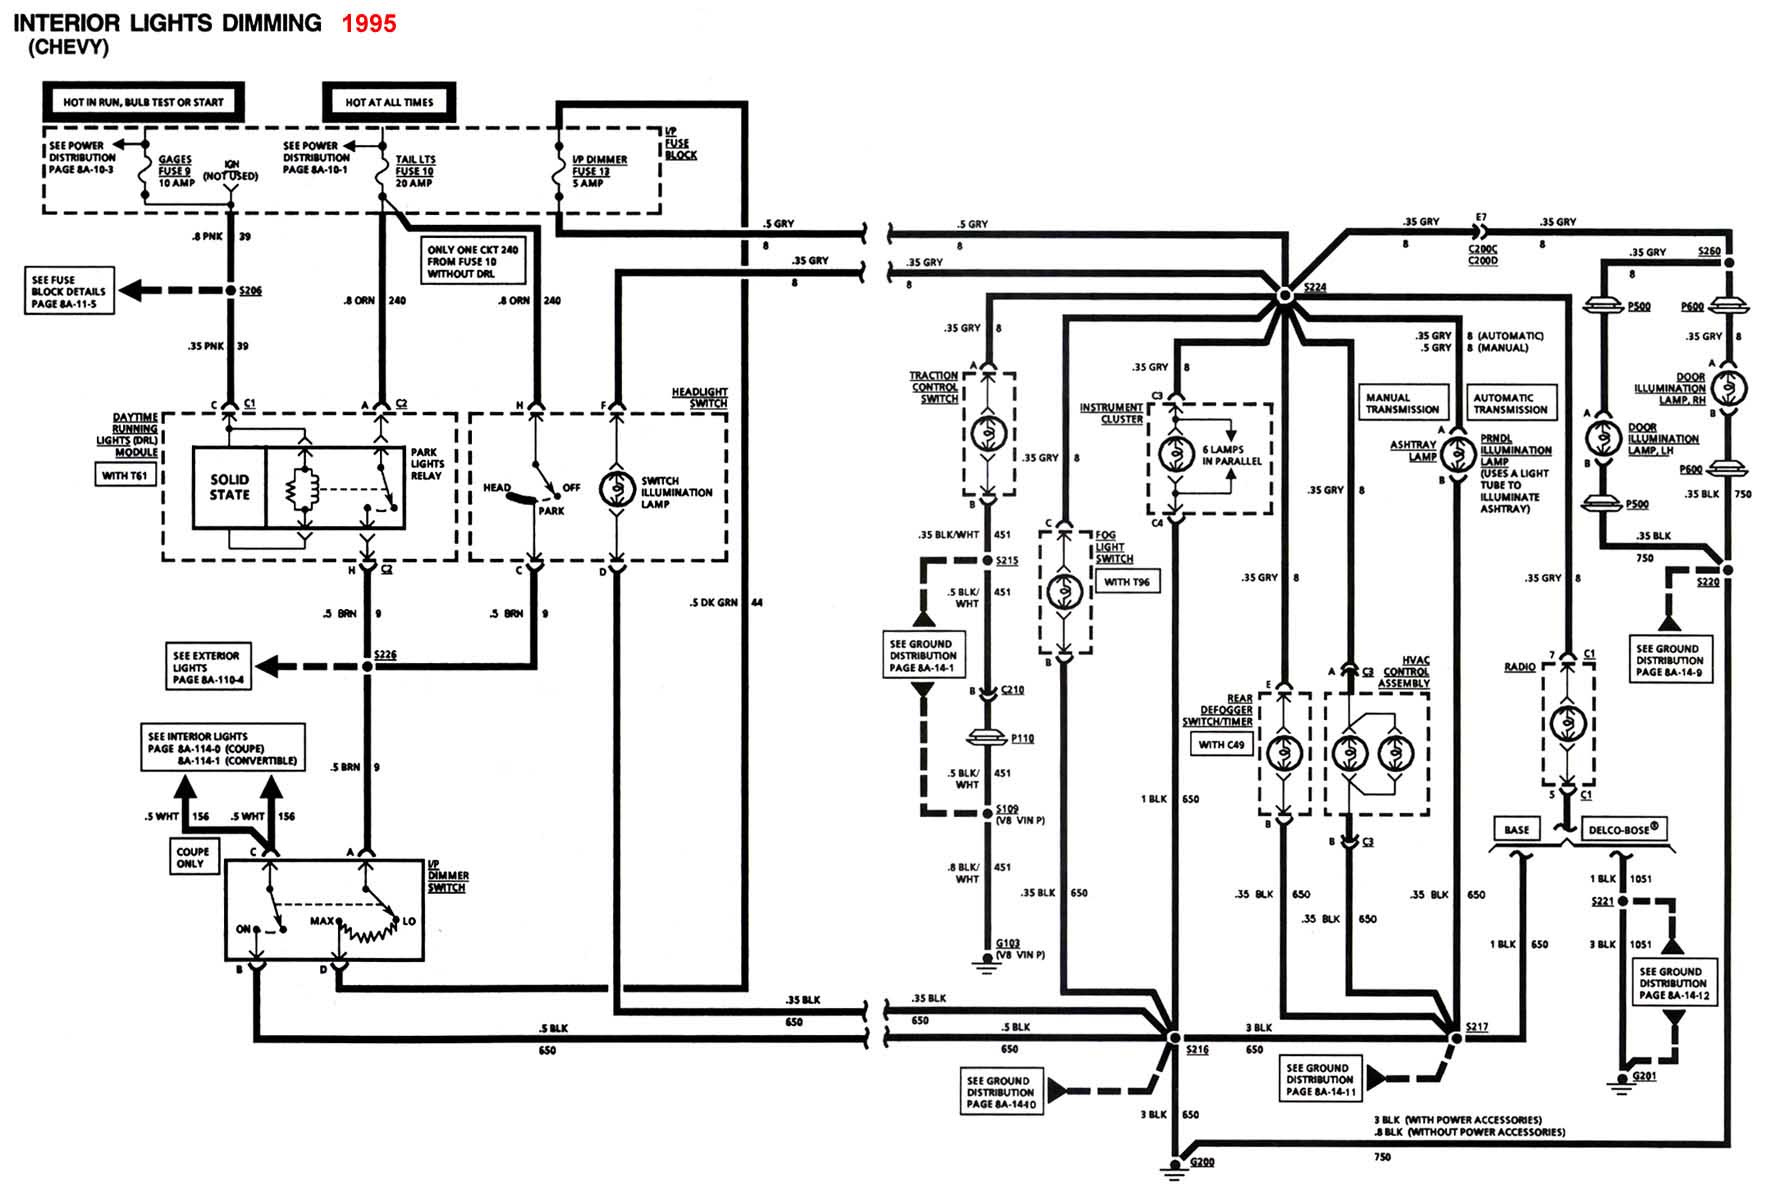 hight resolution of 4th gen lt1 f body tech aidsinterior lights schematic 1995 camaro